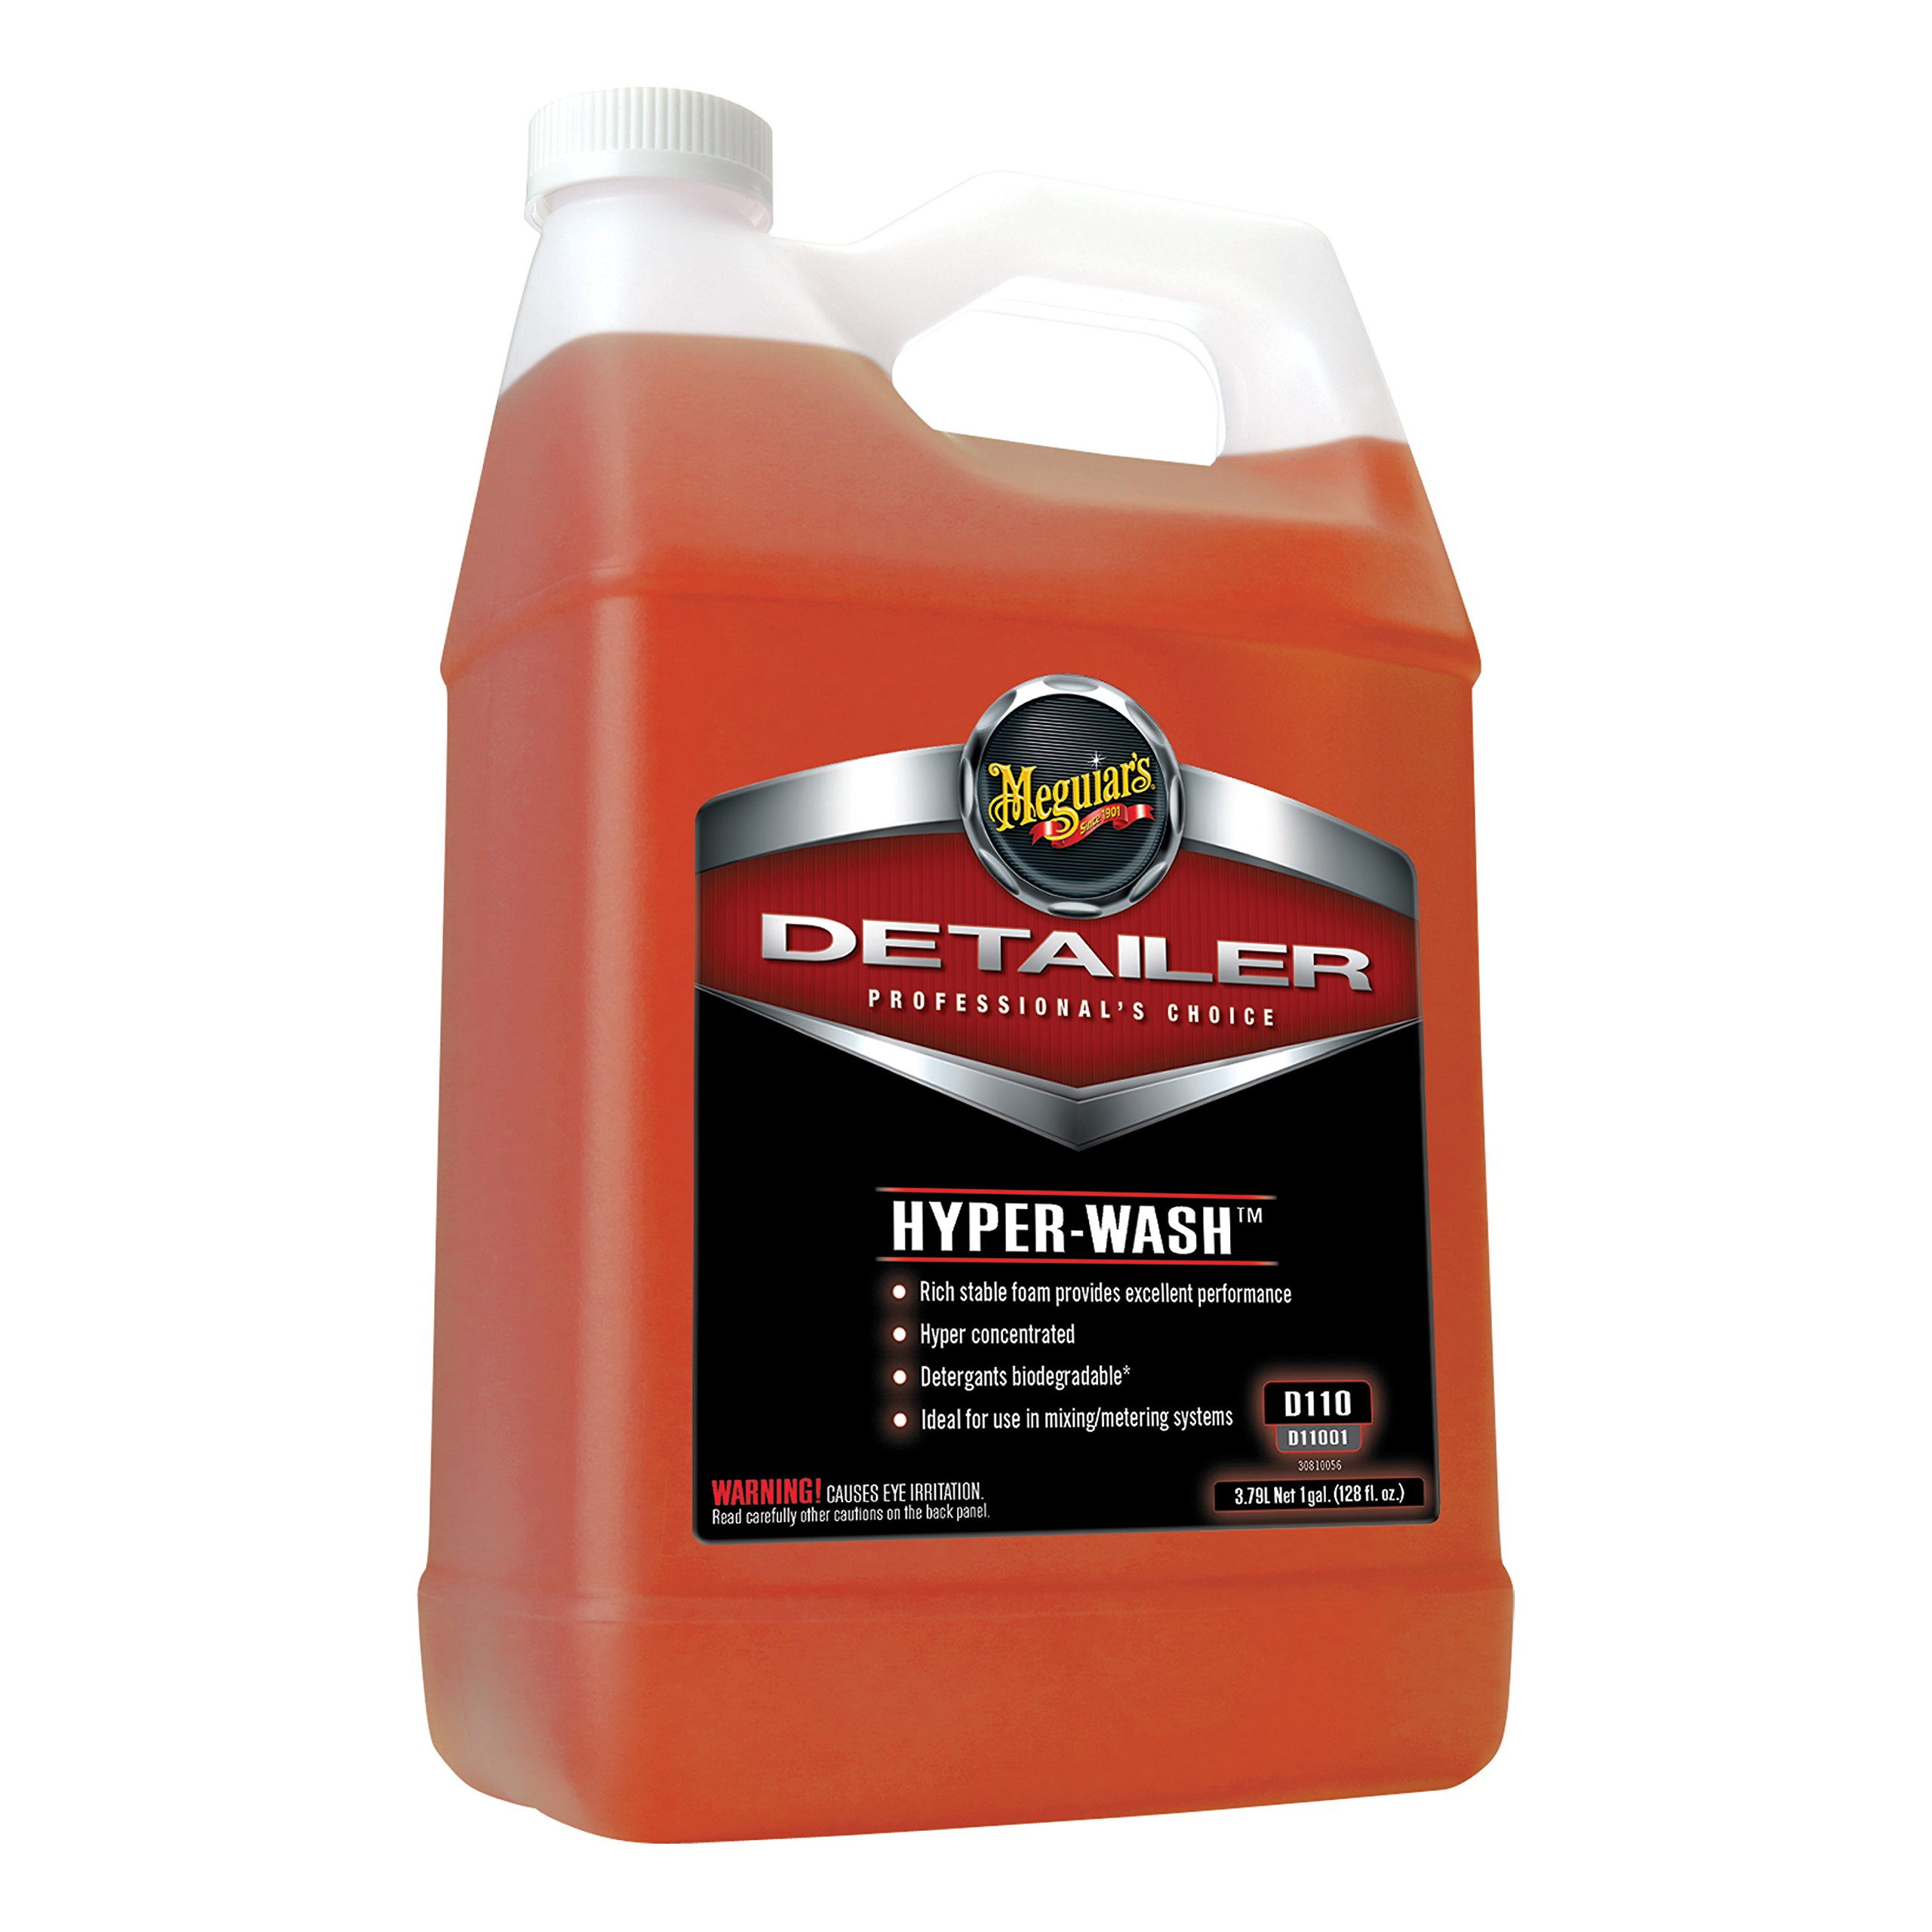 Meguiar's Hyper-Wash - Foaming Car Wash Lifts Off Dirt and Leaves a Rich Shine - D11001, 1 gal